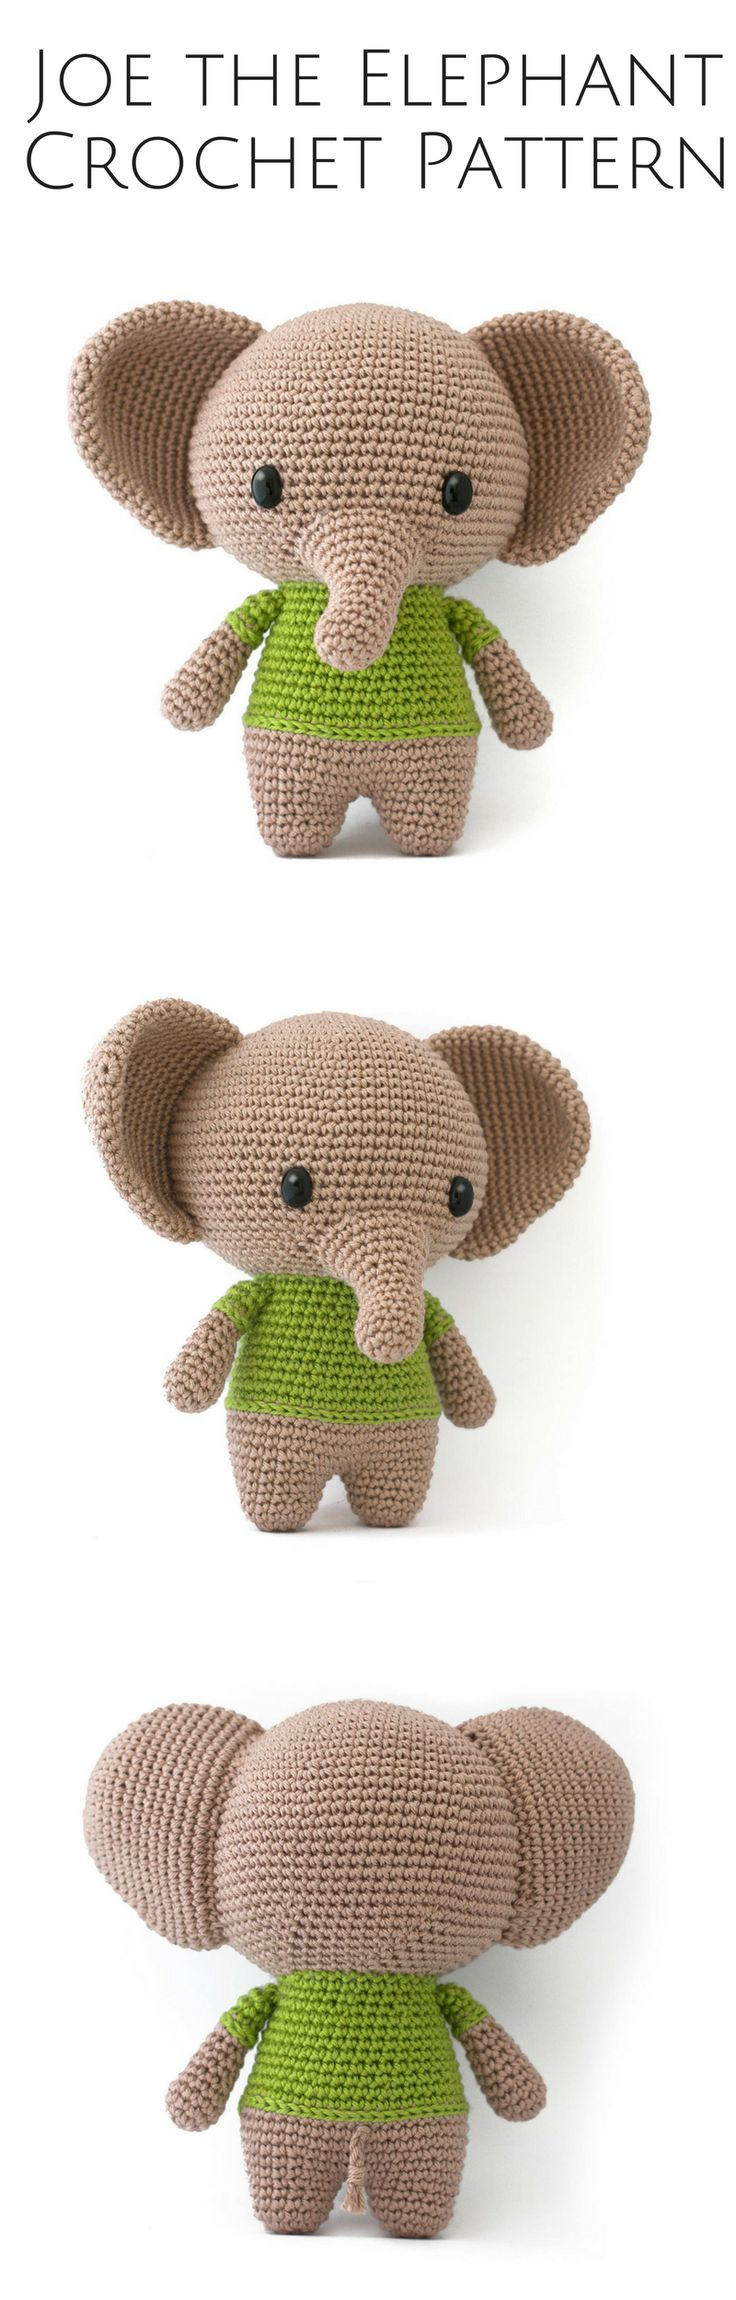 Cute! I love this little crochet elephant pattern. Joe the elephant has so much personality, can you believe it's crochet?? Afflink